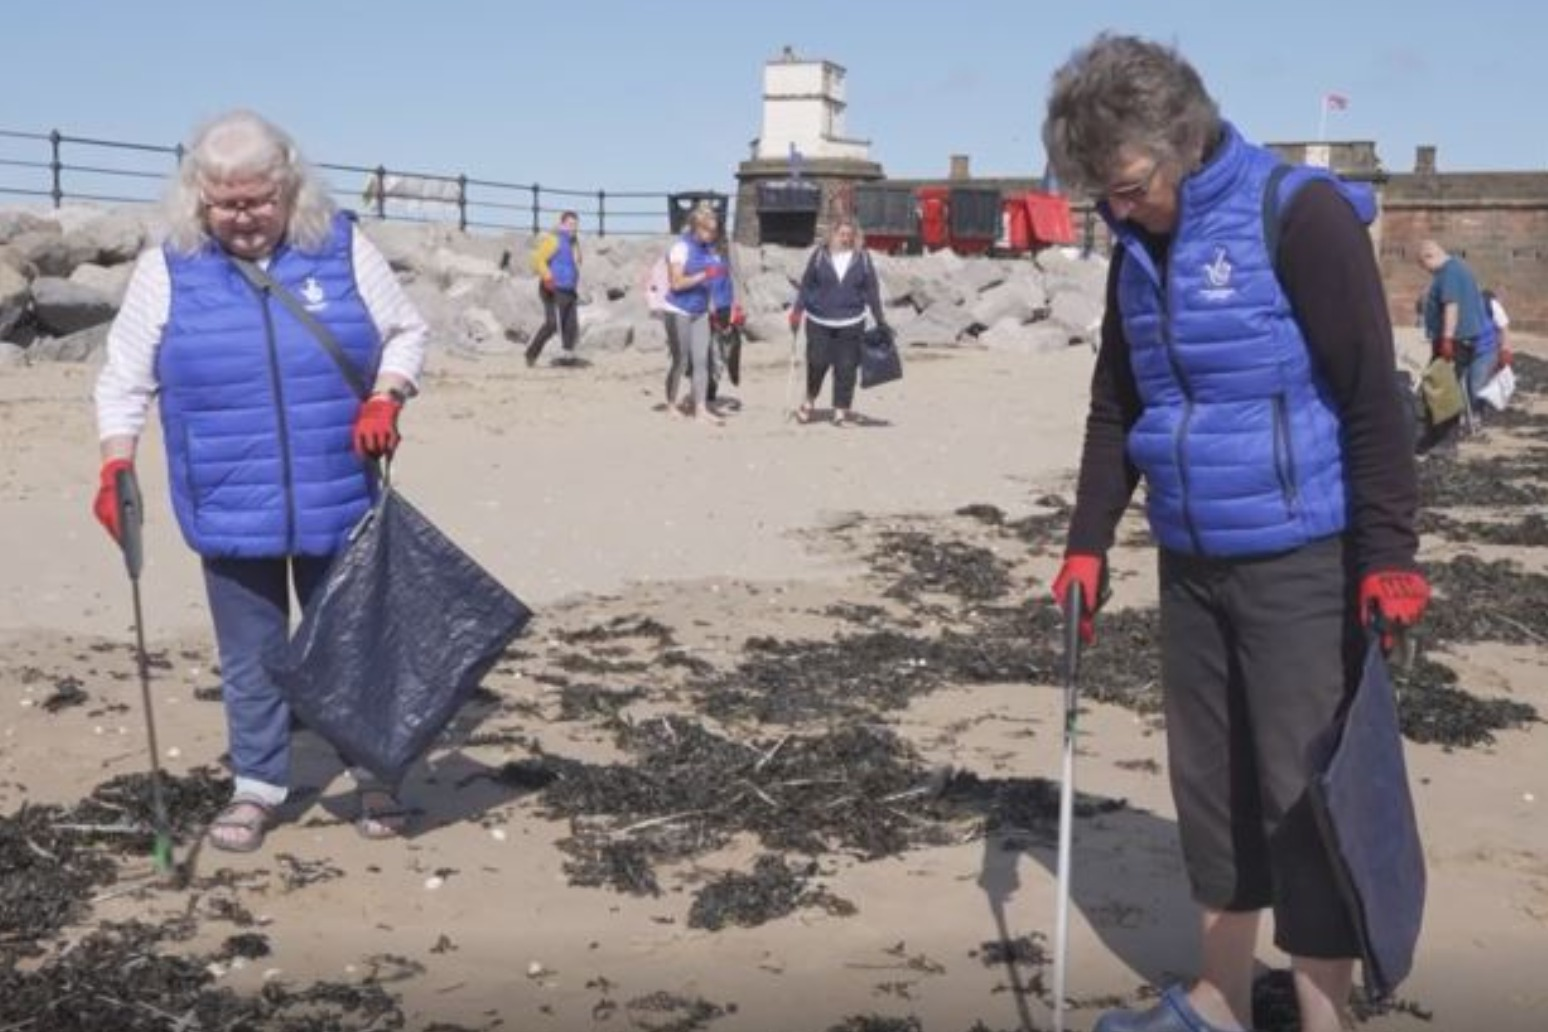 Life's a beach for lottery winners in charity clean-up